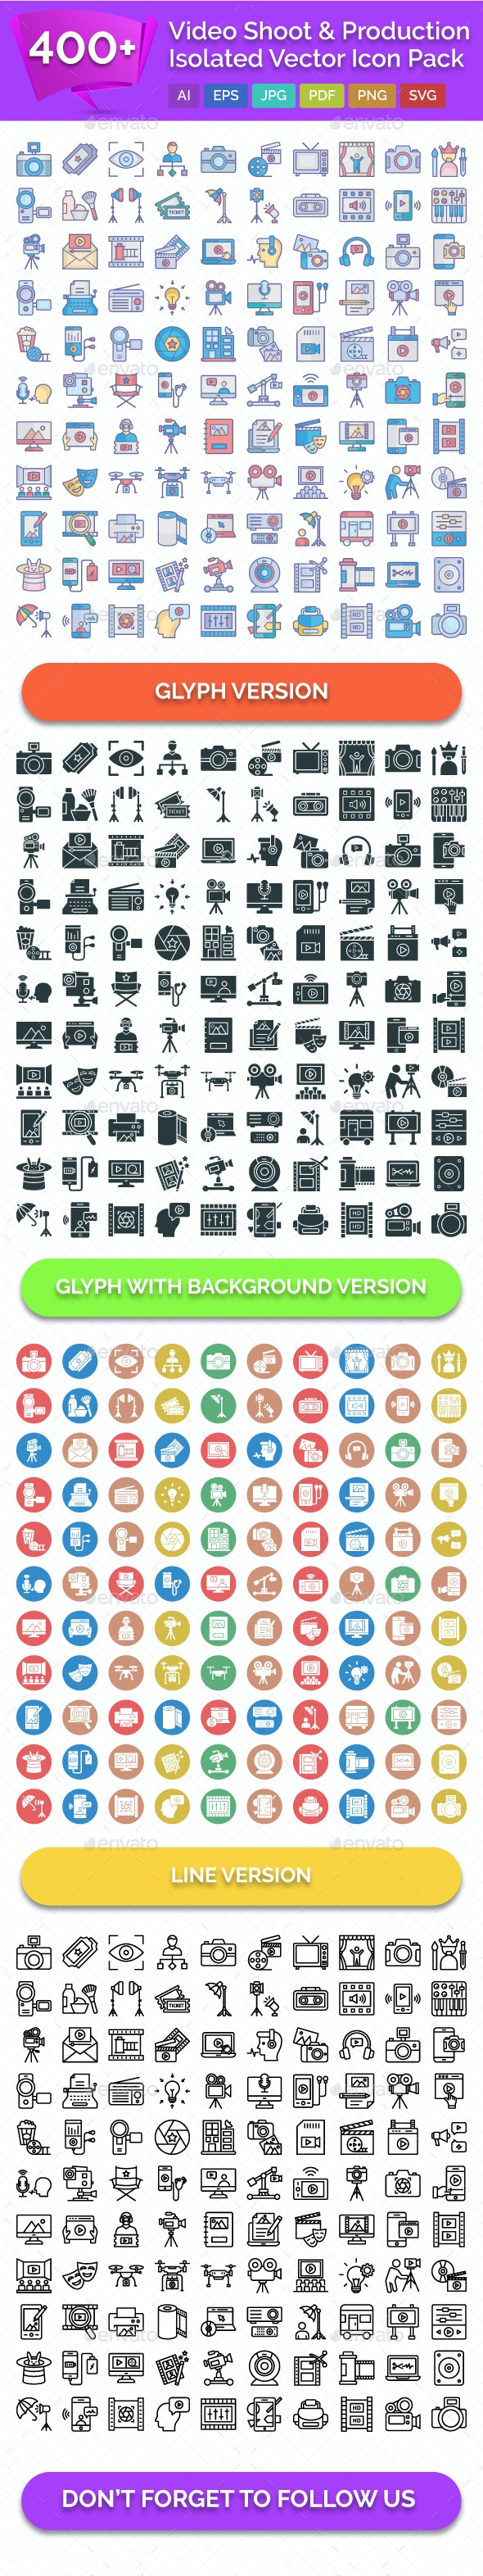 400+ Video Shoot & Production Isolated Vector Icons Pack - Icons